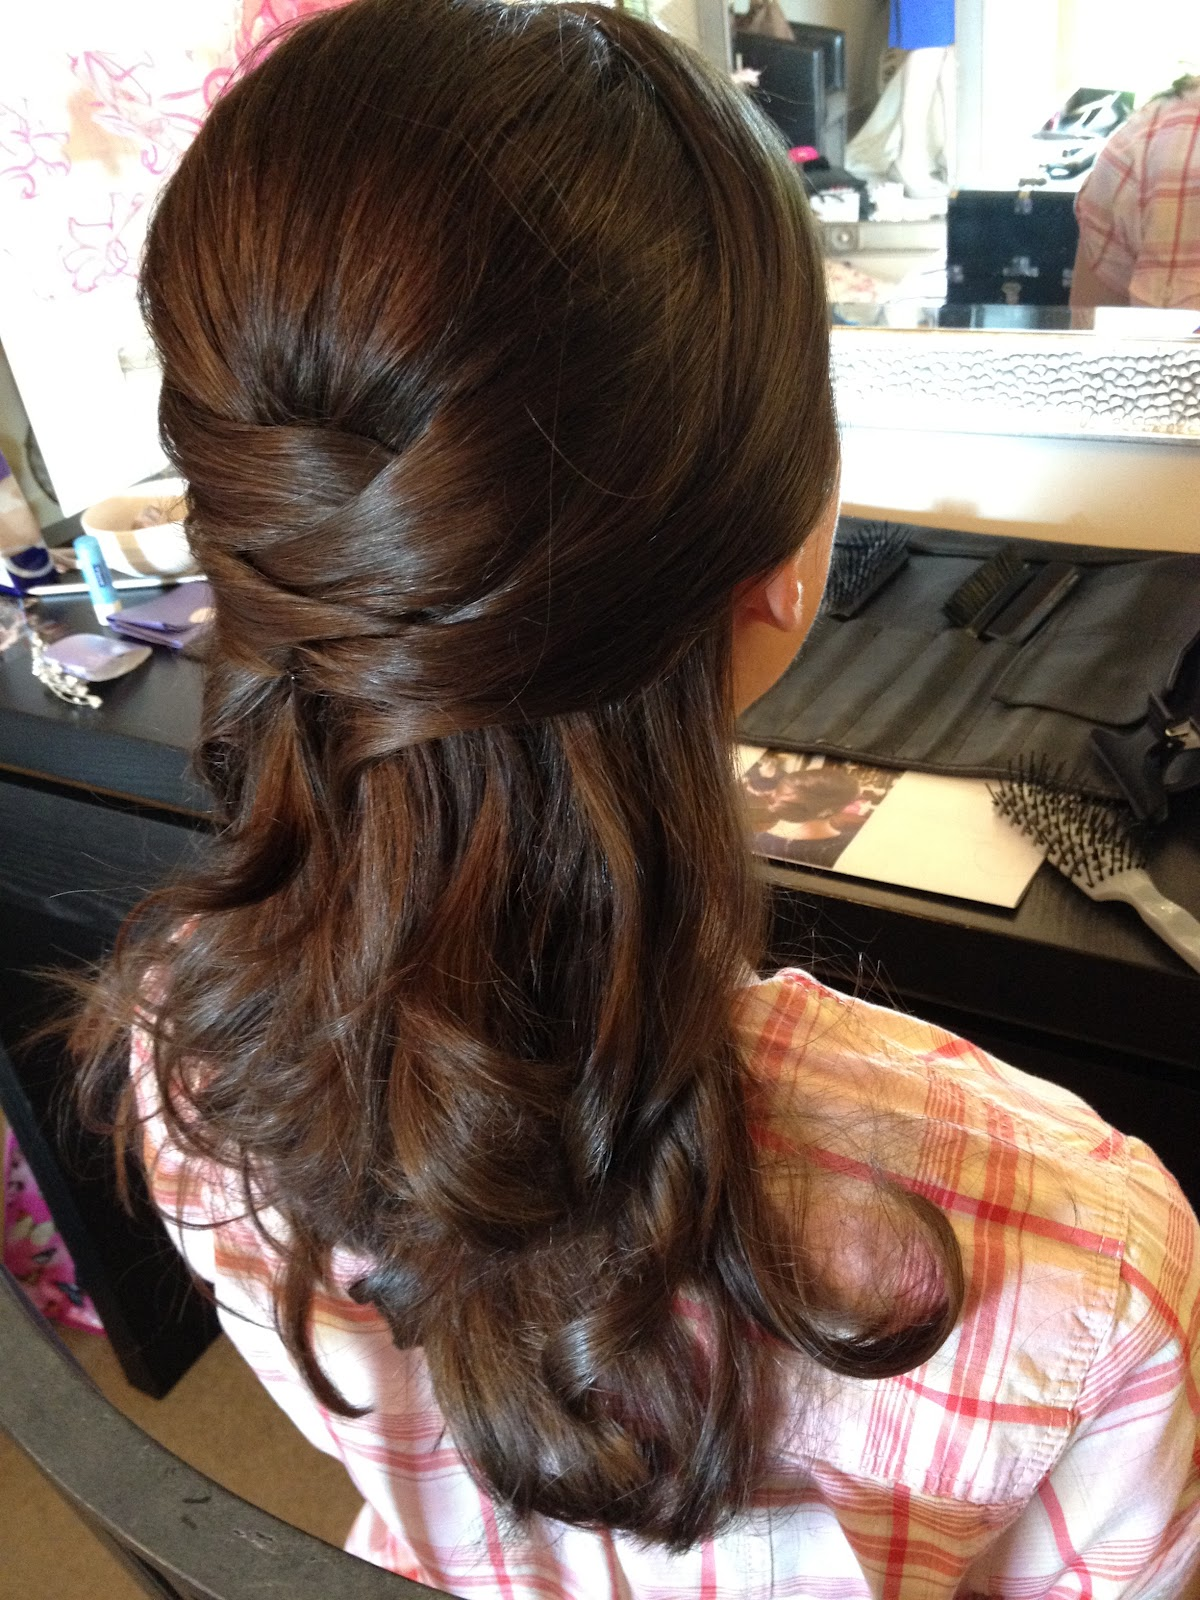 Hairstyles For Long Hair Sweet 16 : ... - Sweet 16 Hairstyles With Tiara Long Tail Keywords KeywordsKing